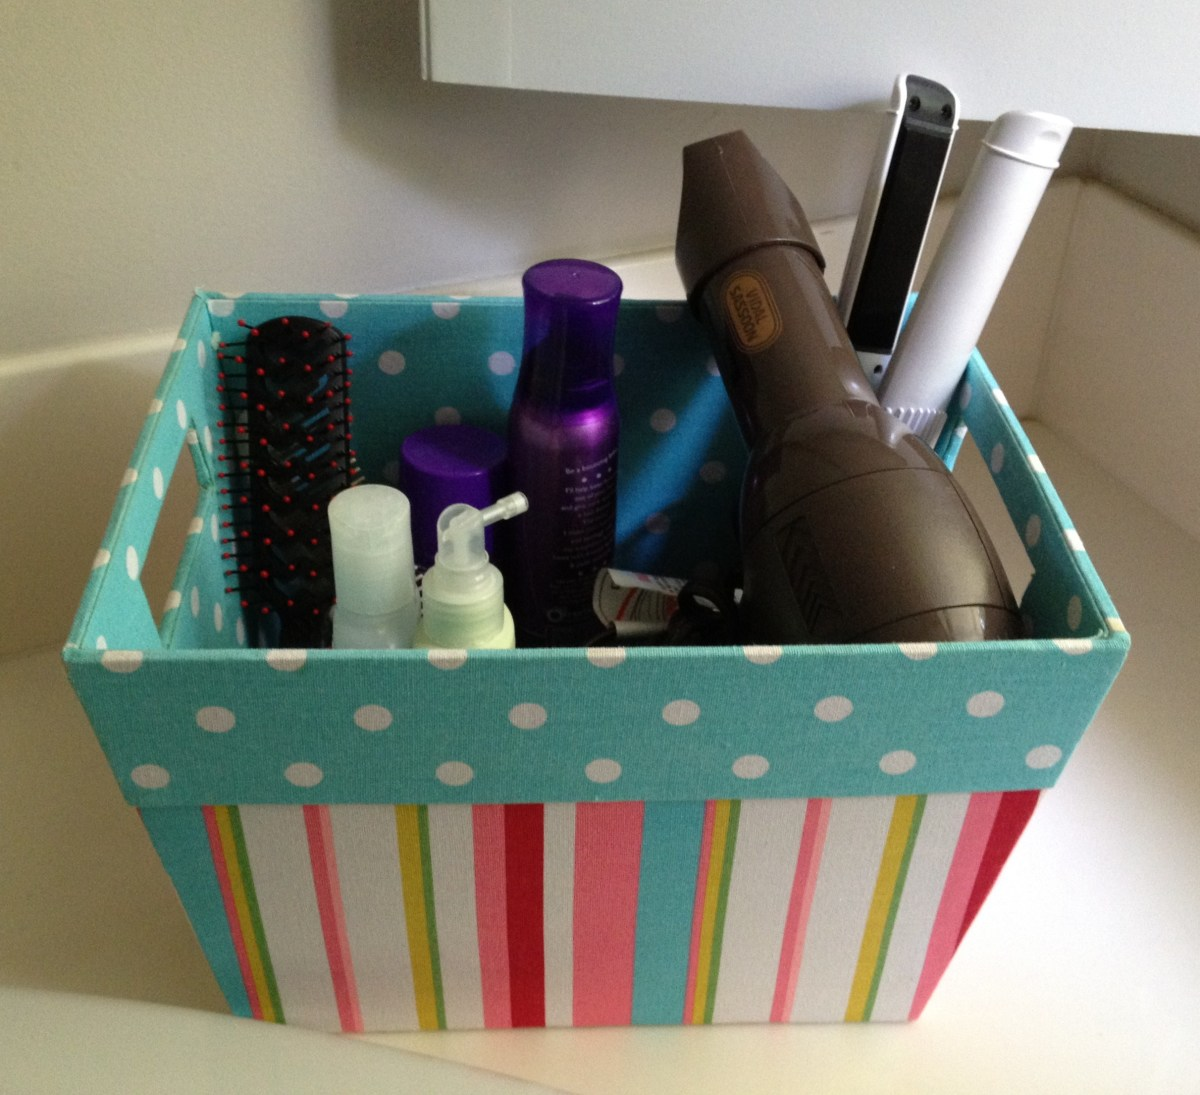 Place hair styling supplies in a fabric organizing box and store under the sink.